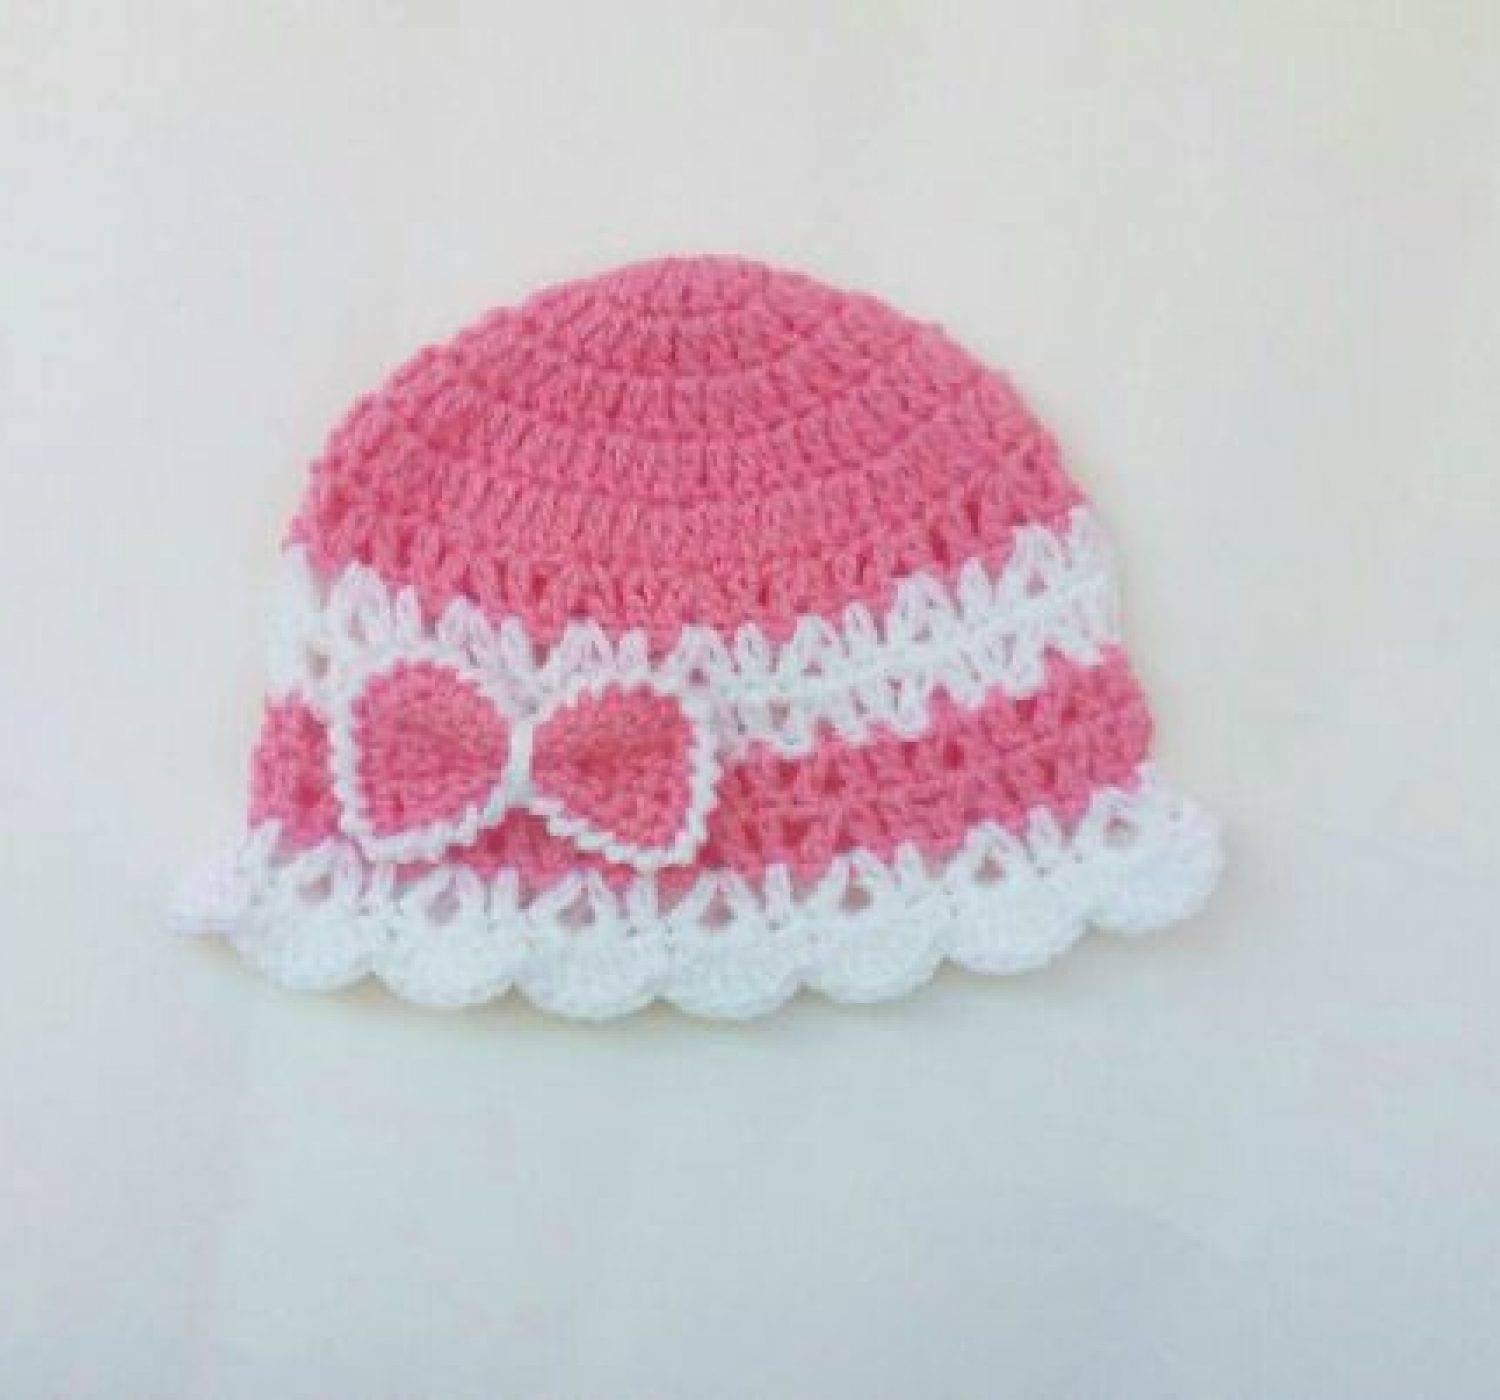 The Pink Crochet Baby Hat Pattern – And the Complete Matching Set!